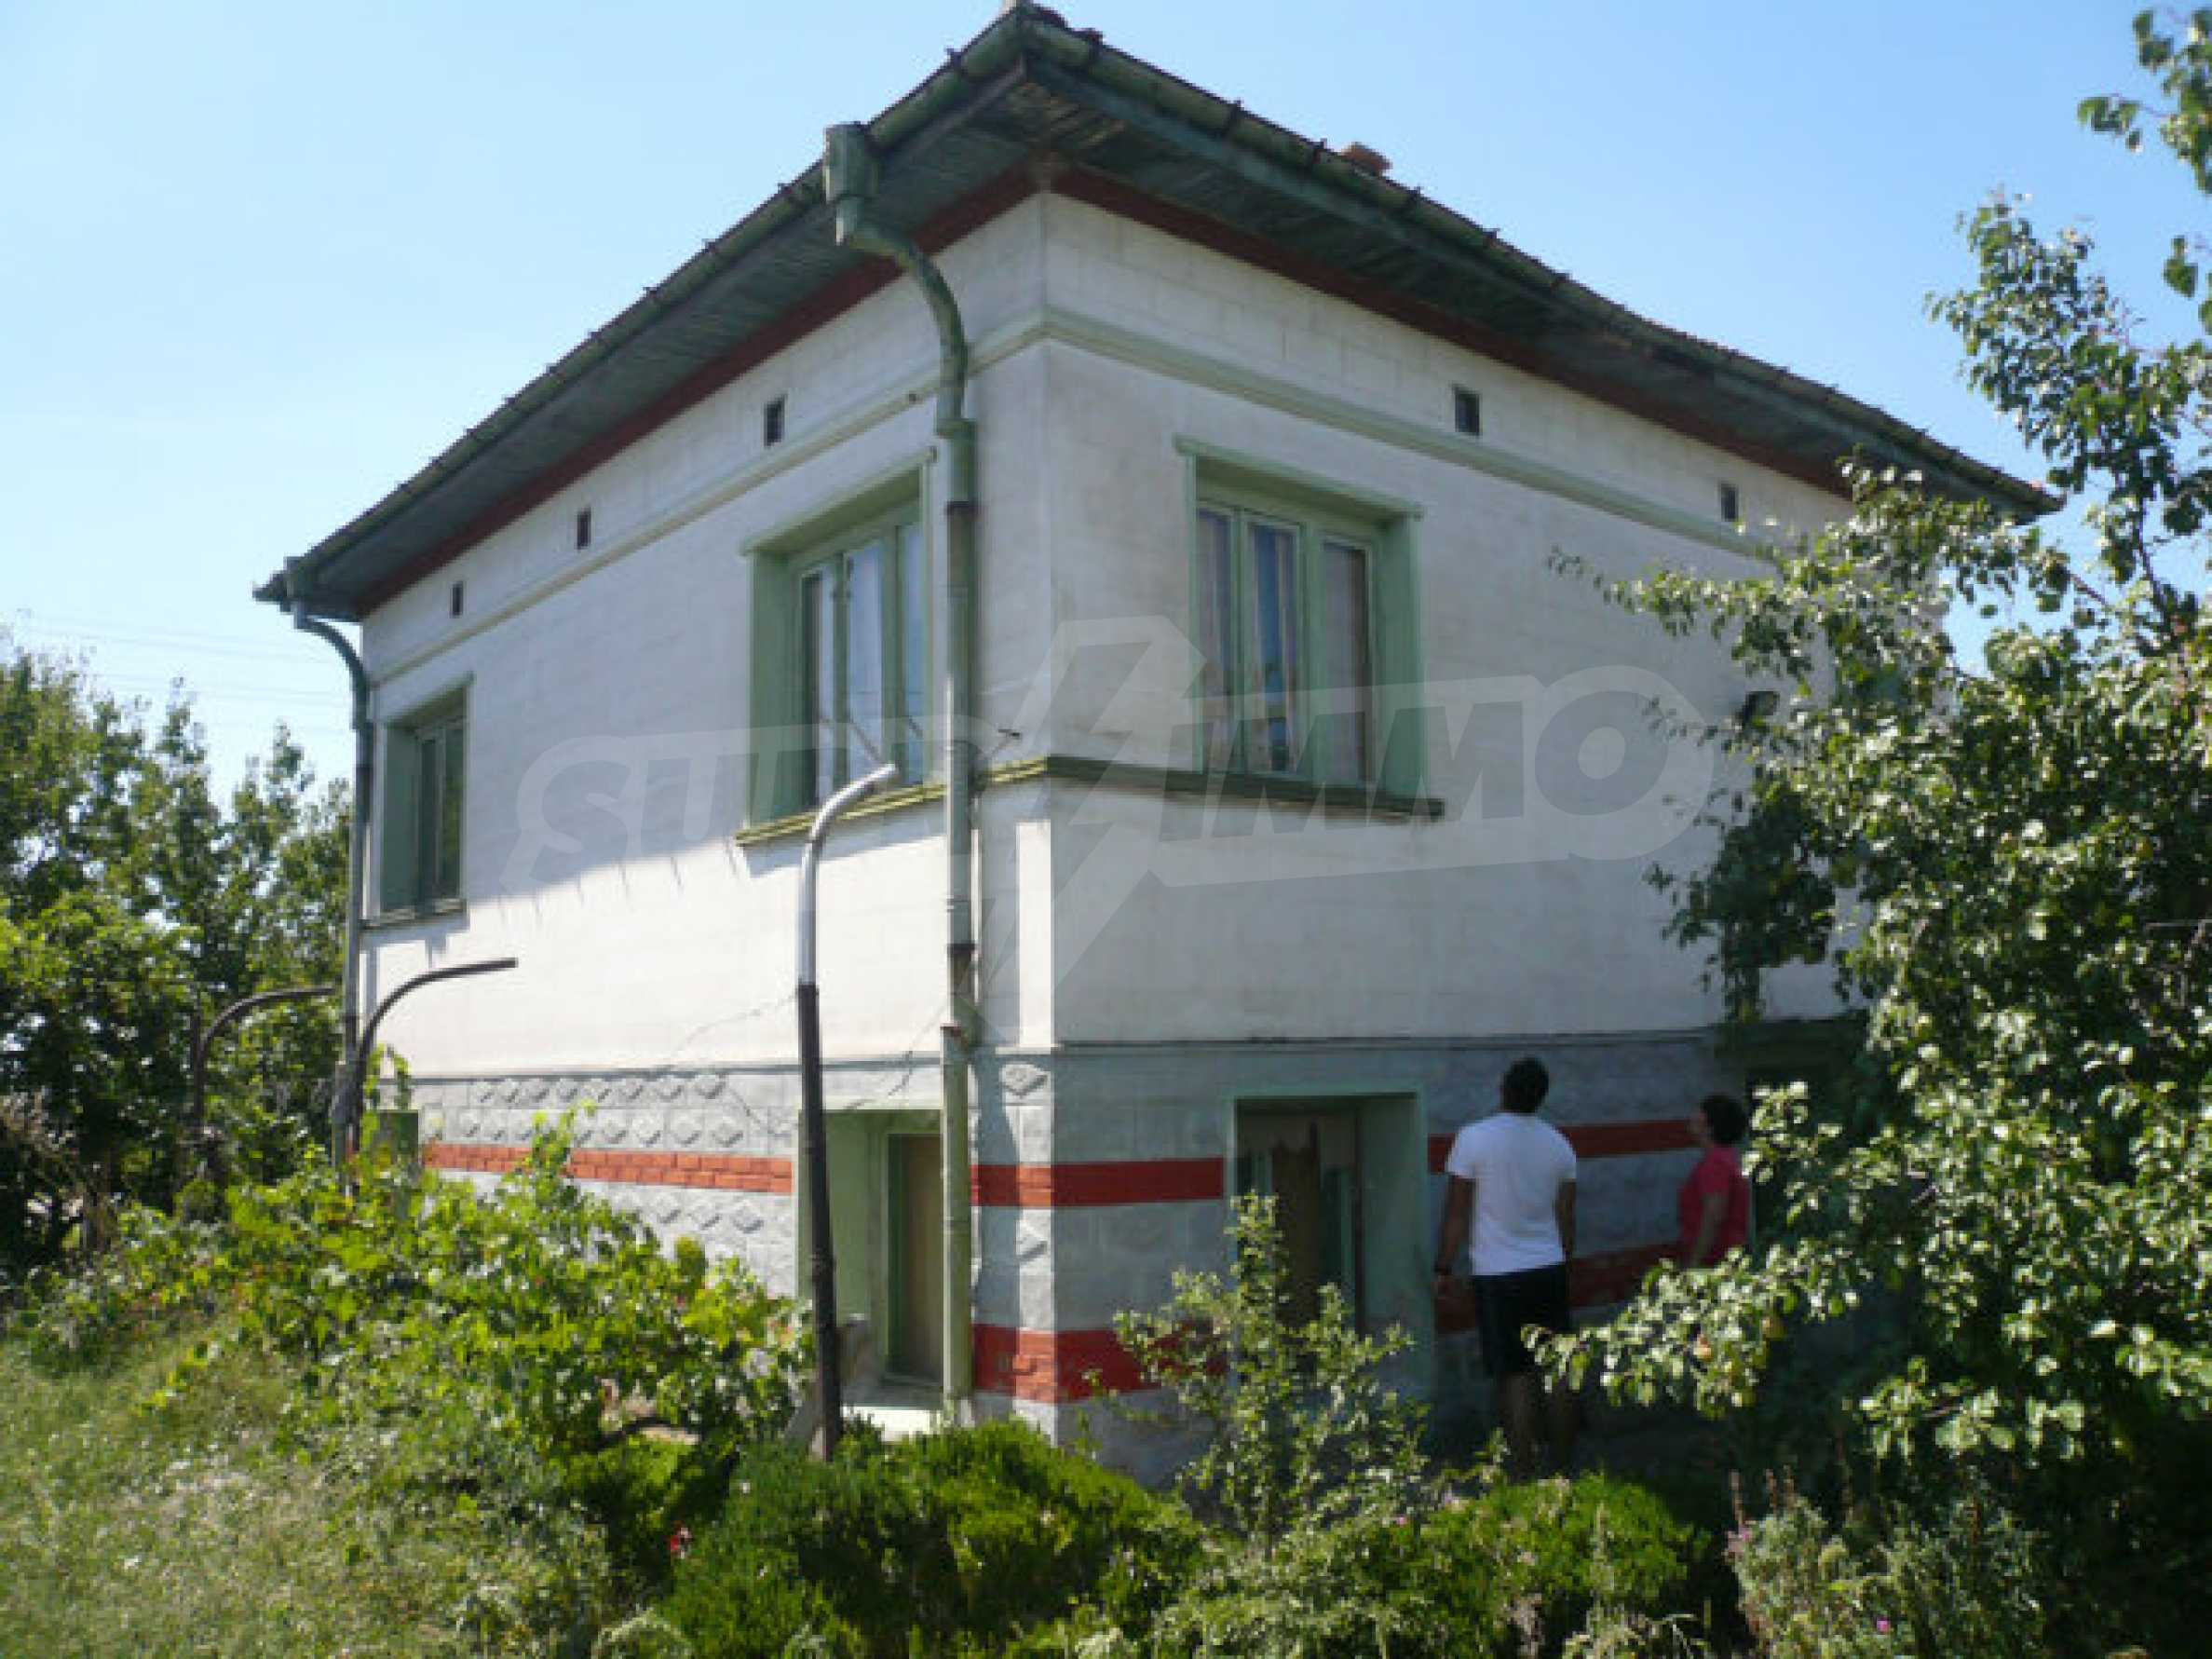 Big rural two-storey house on the Danube river near Vidin